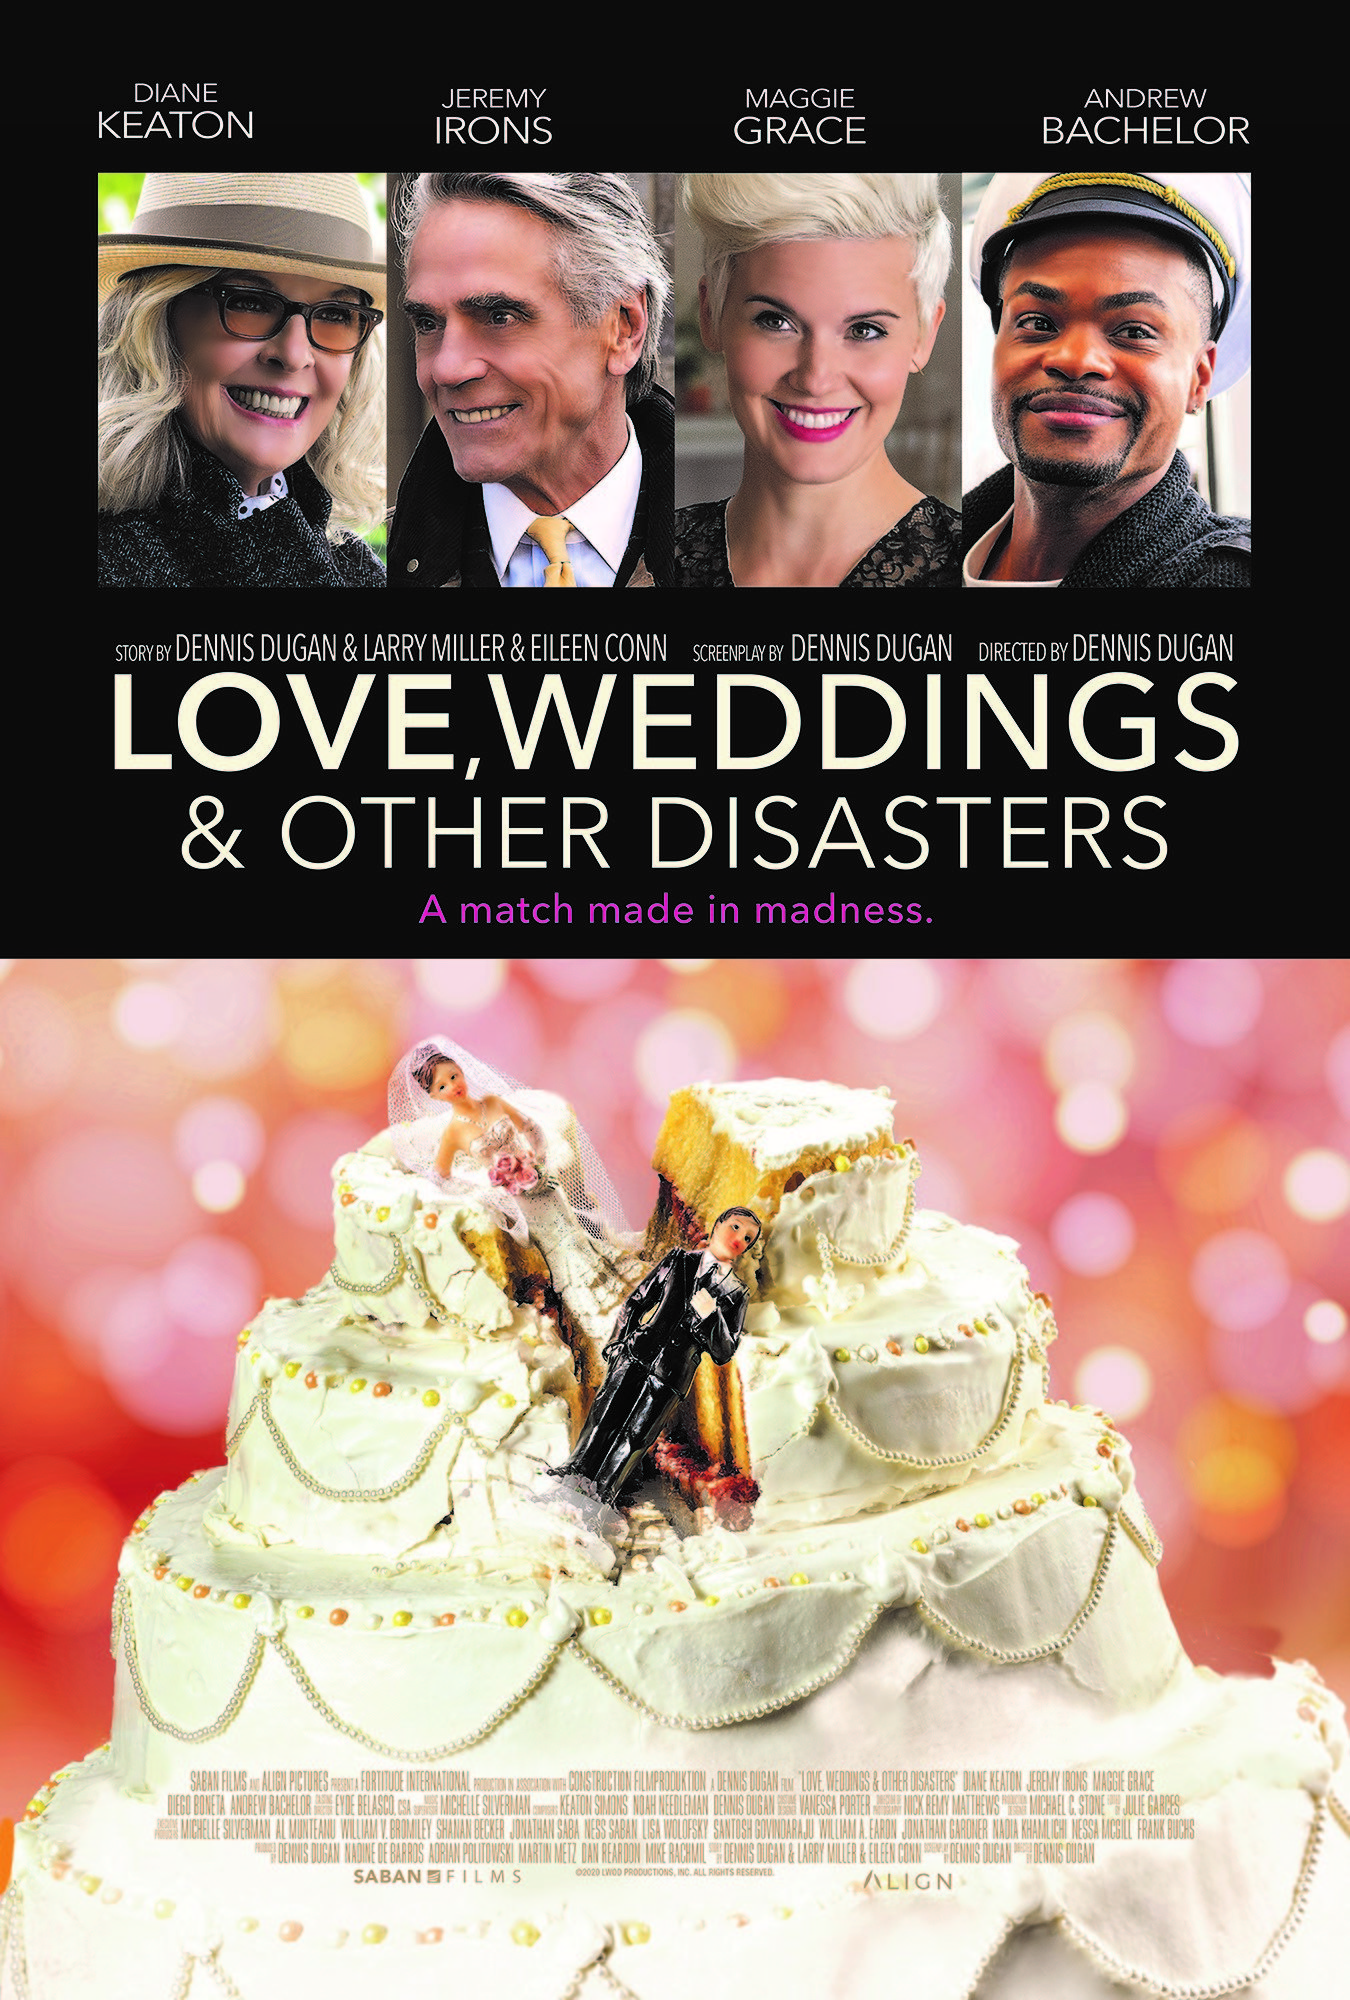 Love, Weddings & Other Disasters poster image